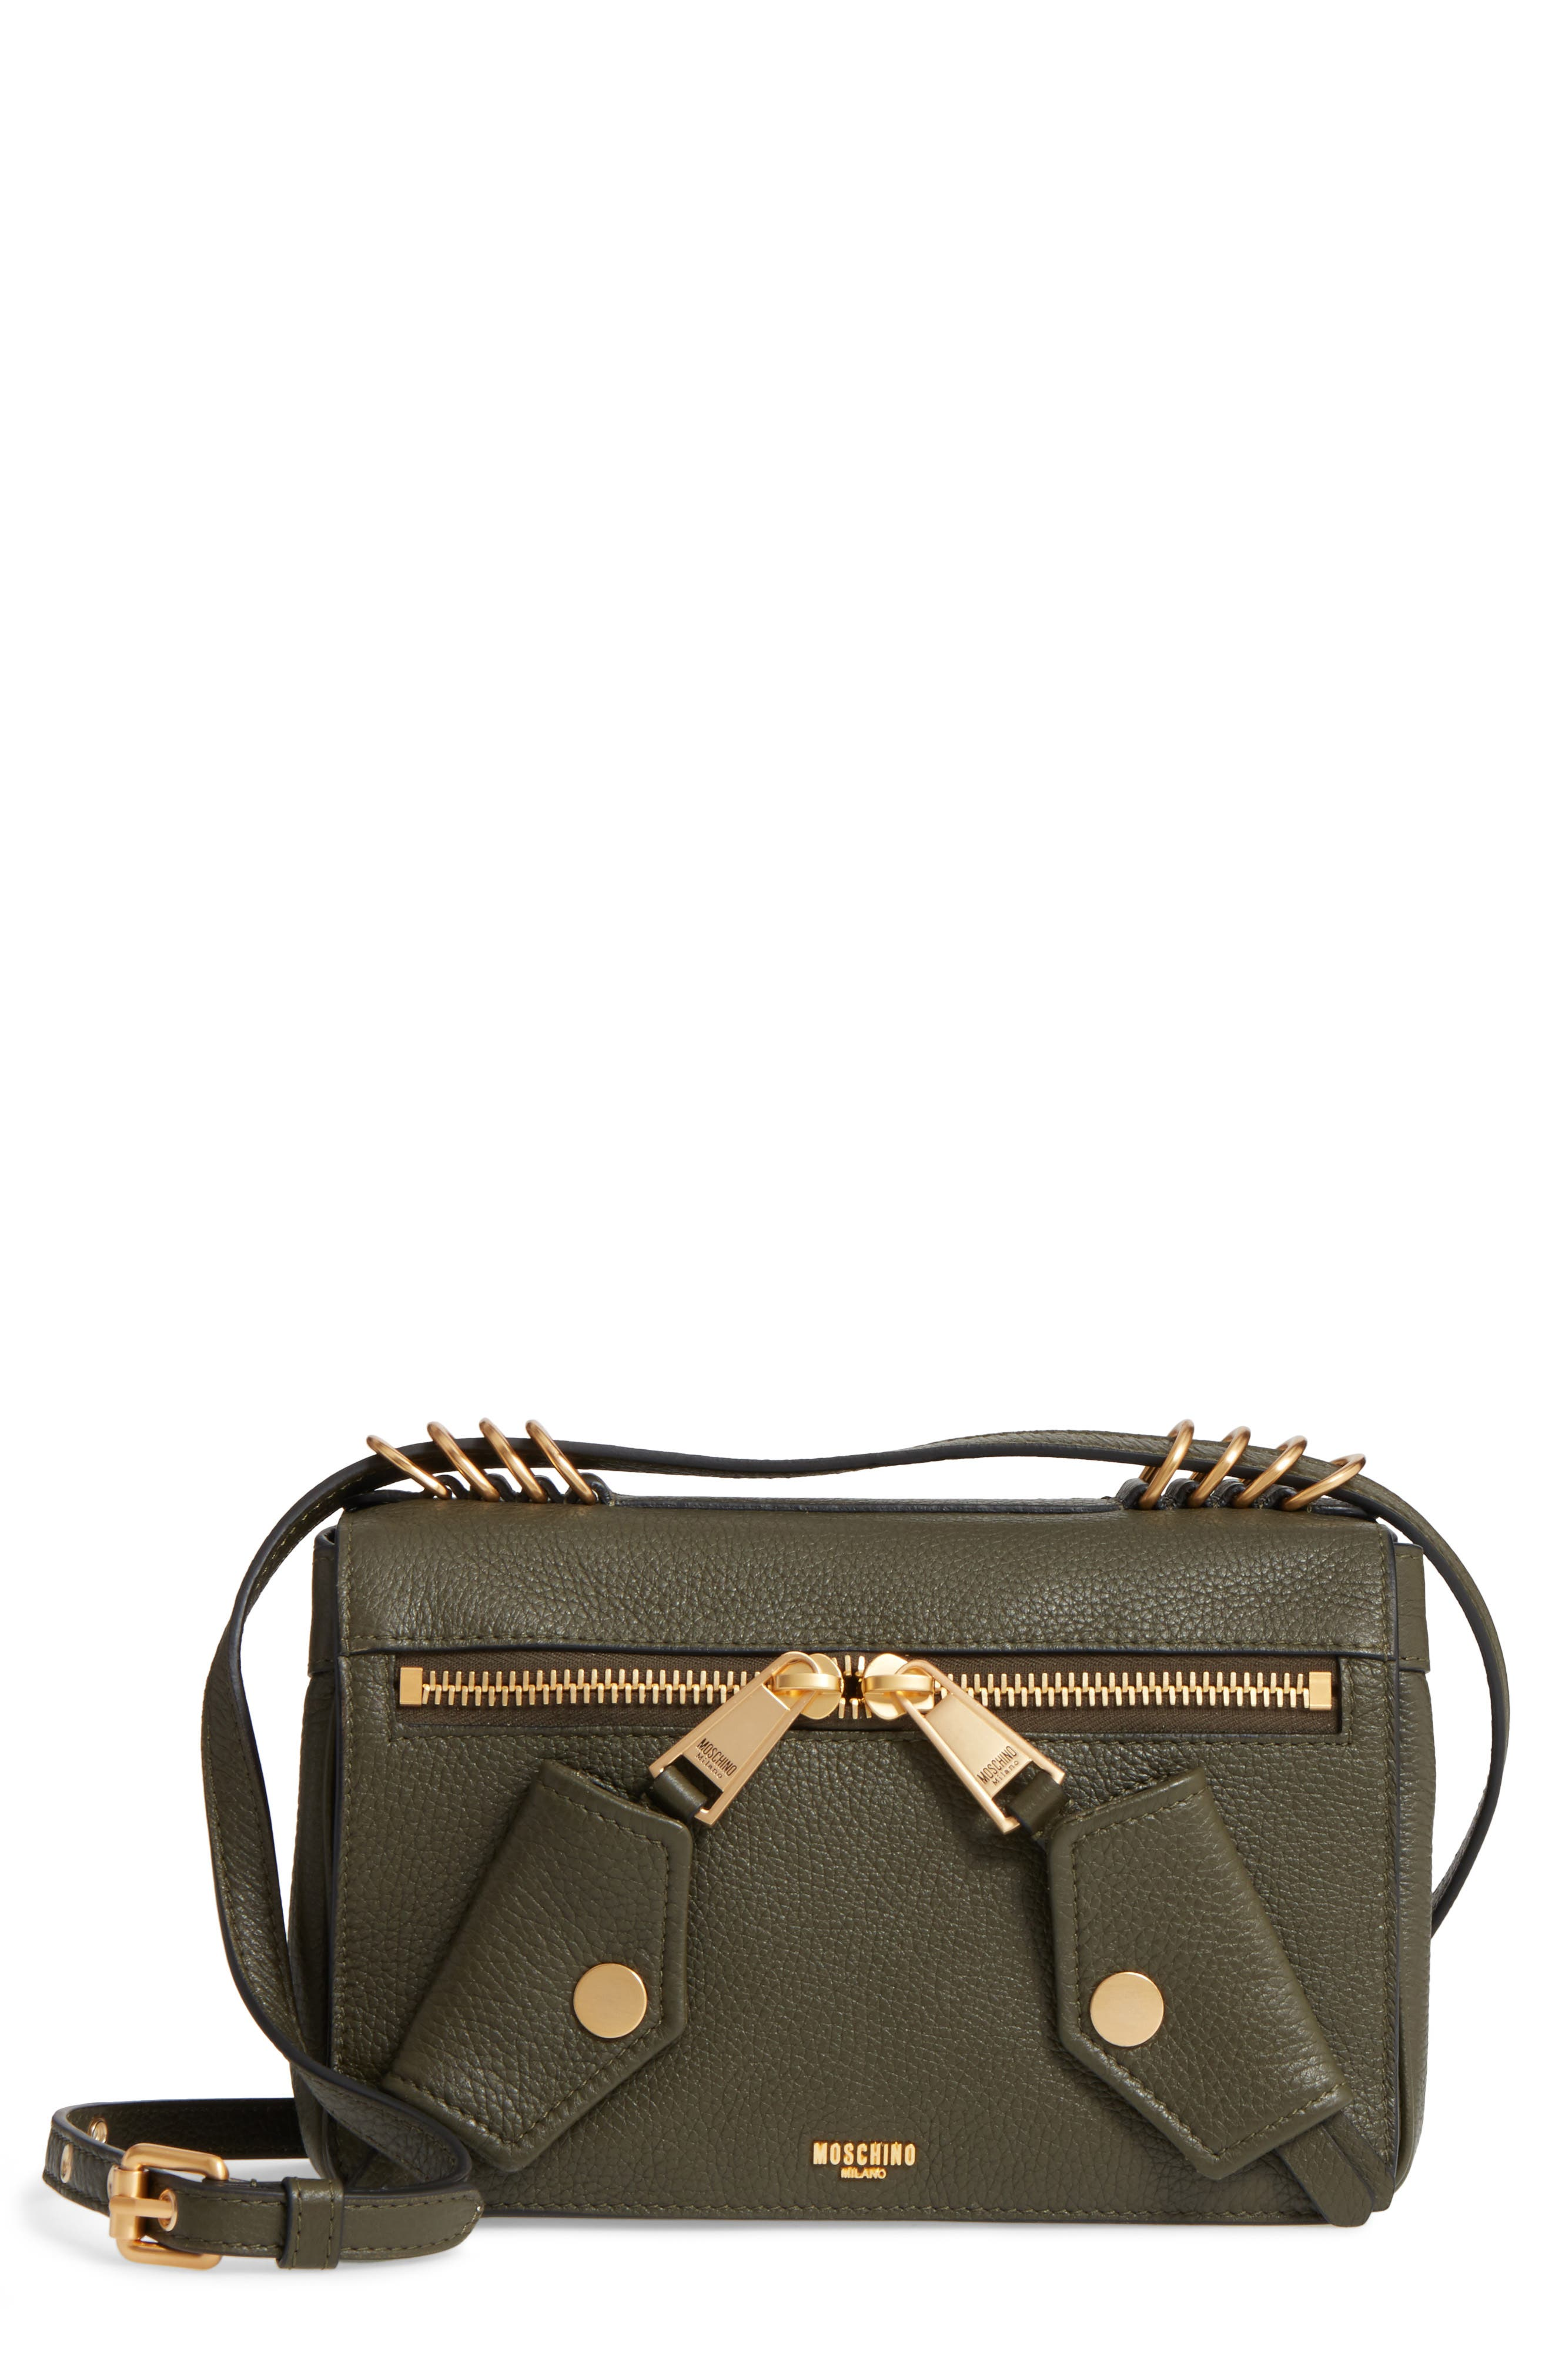 Moschino Grainy-B Leather Crossbody Bag